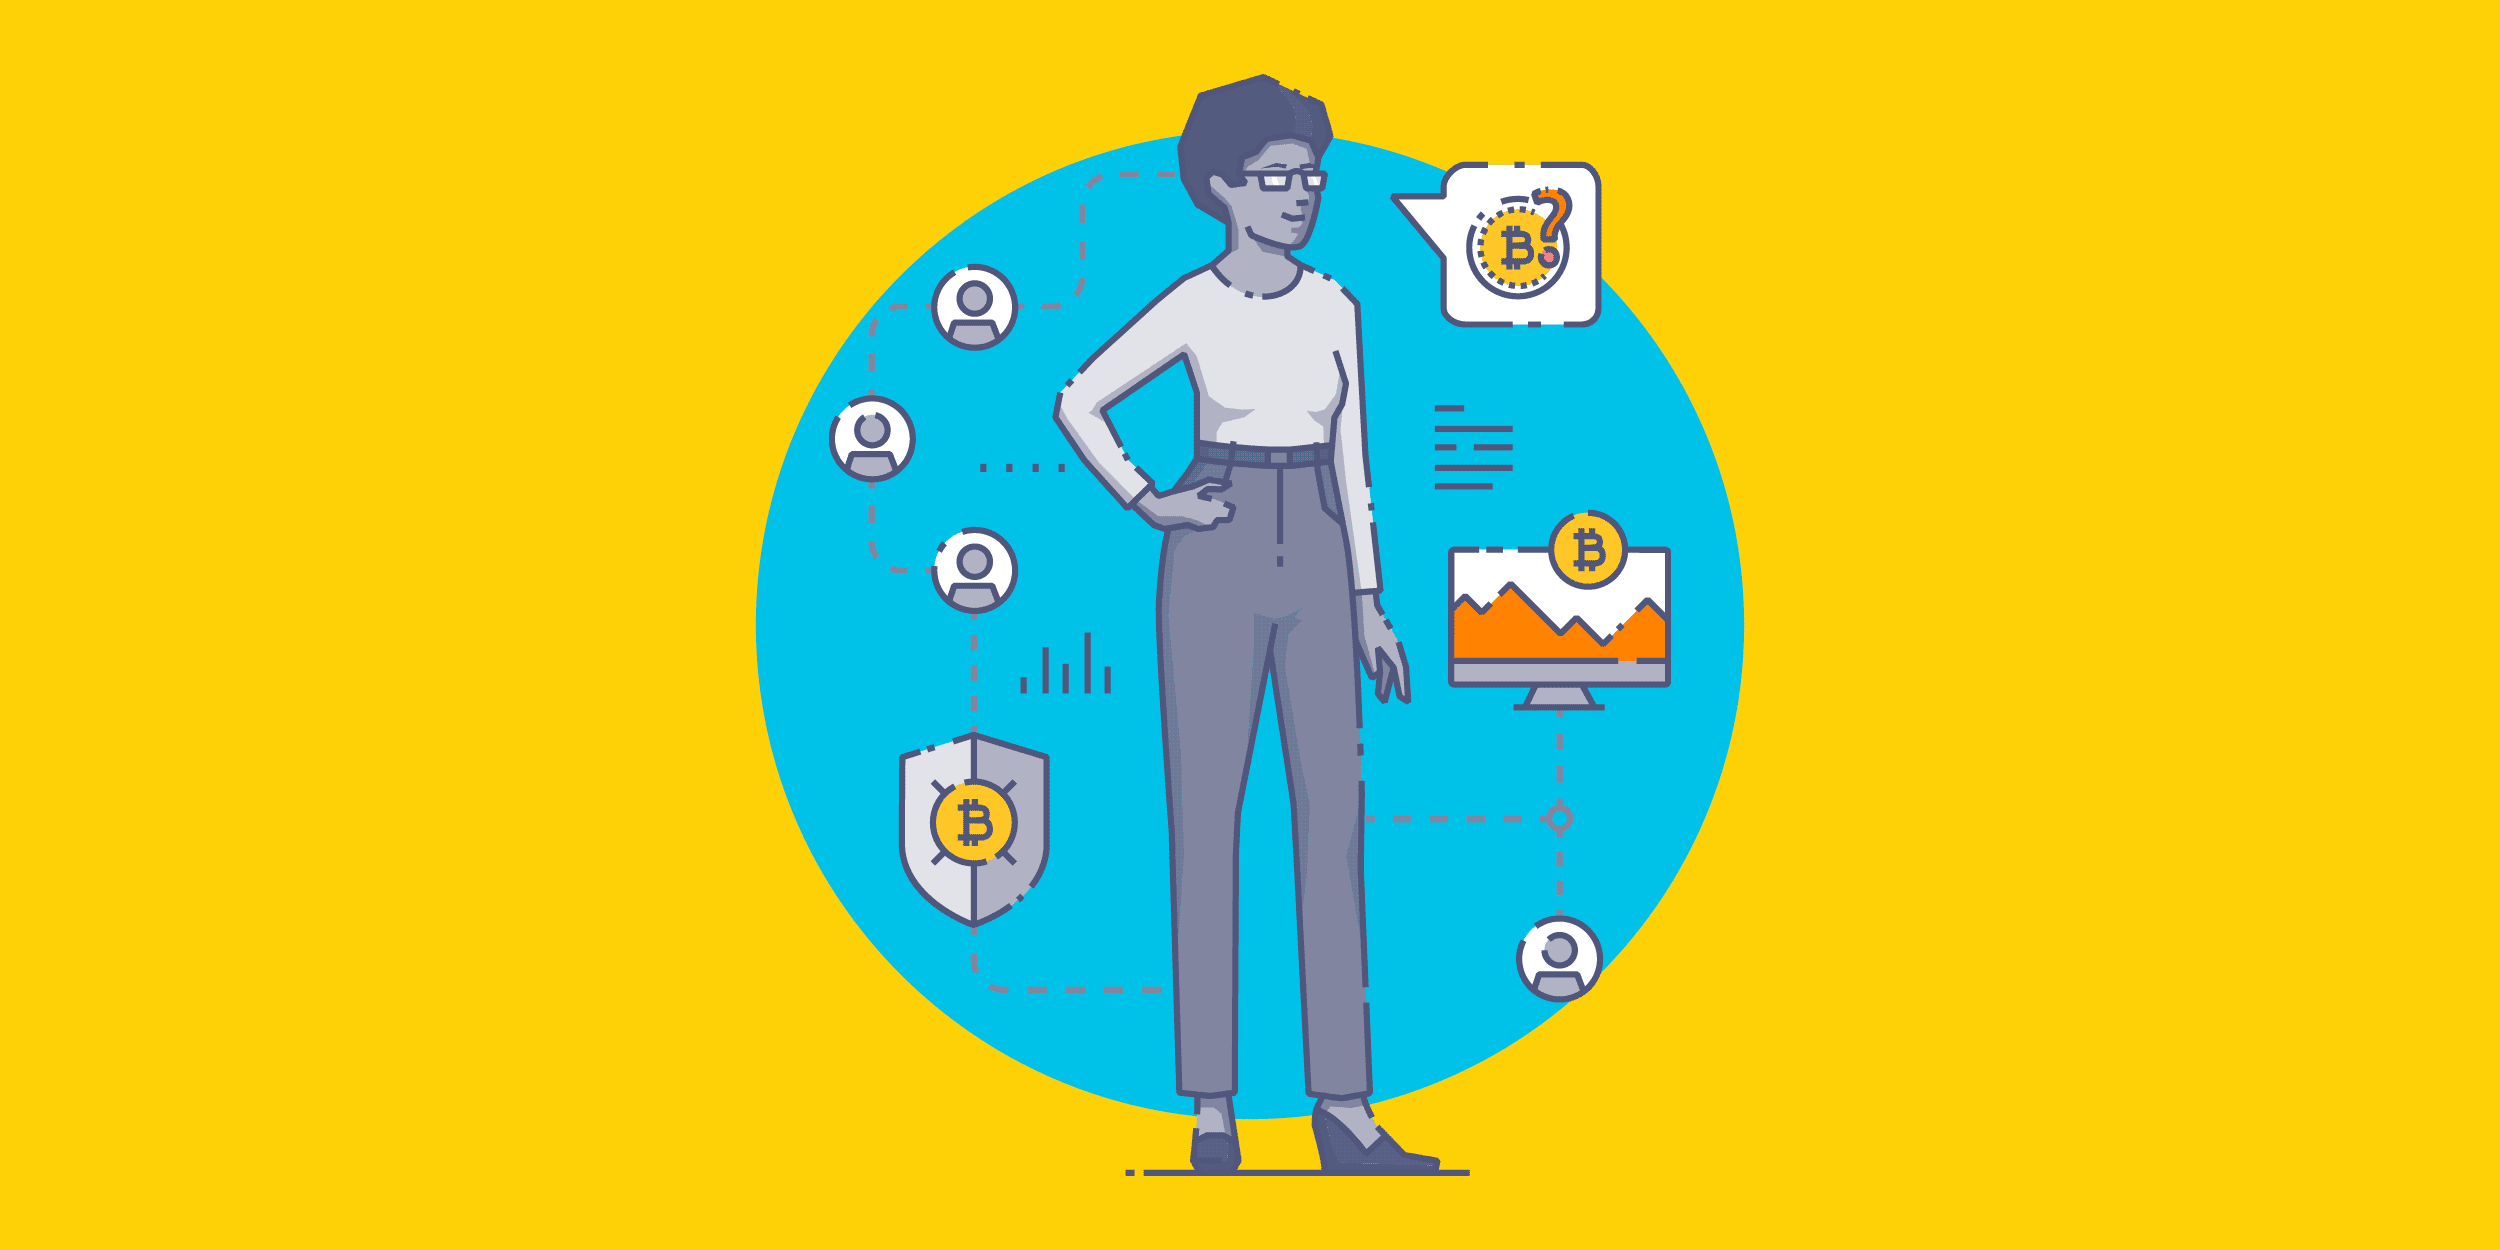 illustration of a woman talking about bitcoin and surrounded by a web of people using bitcoin for nonprofits